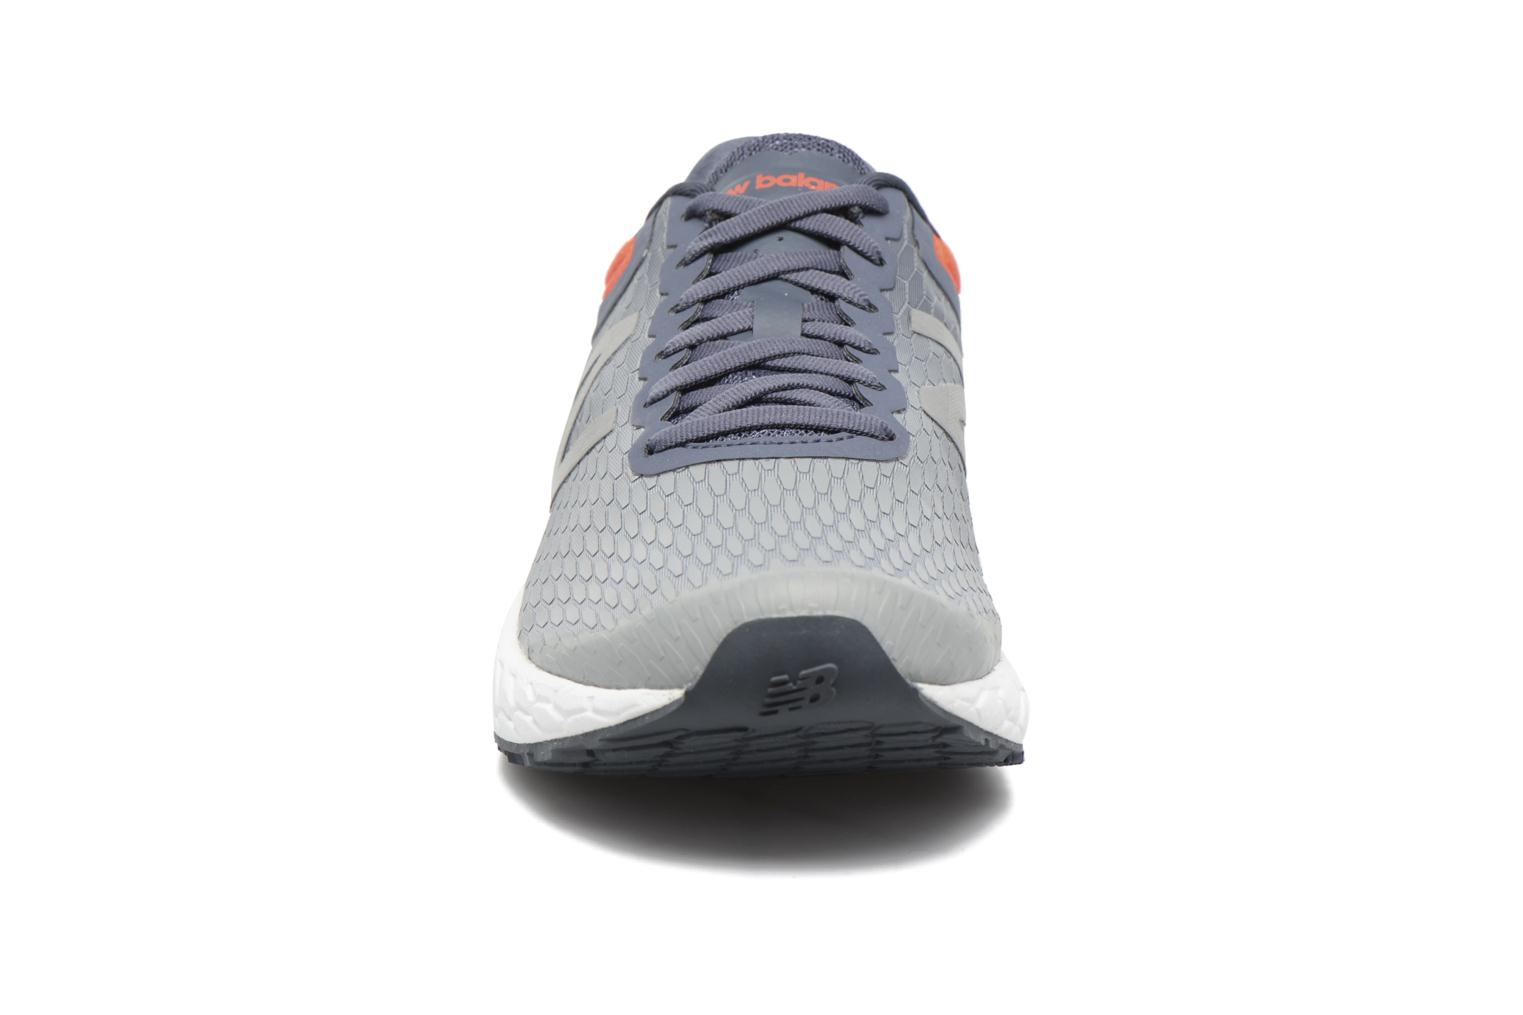 MBORA GO3 Grey/Orange